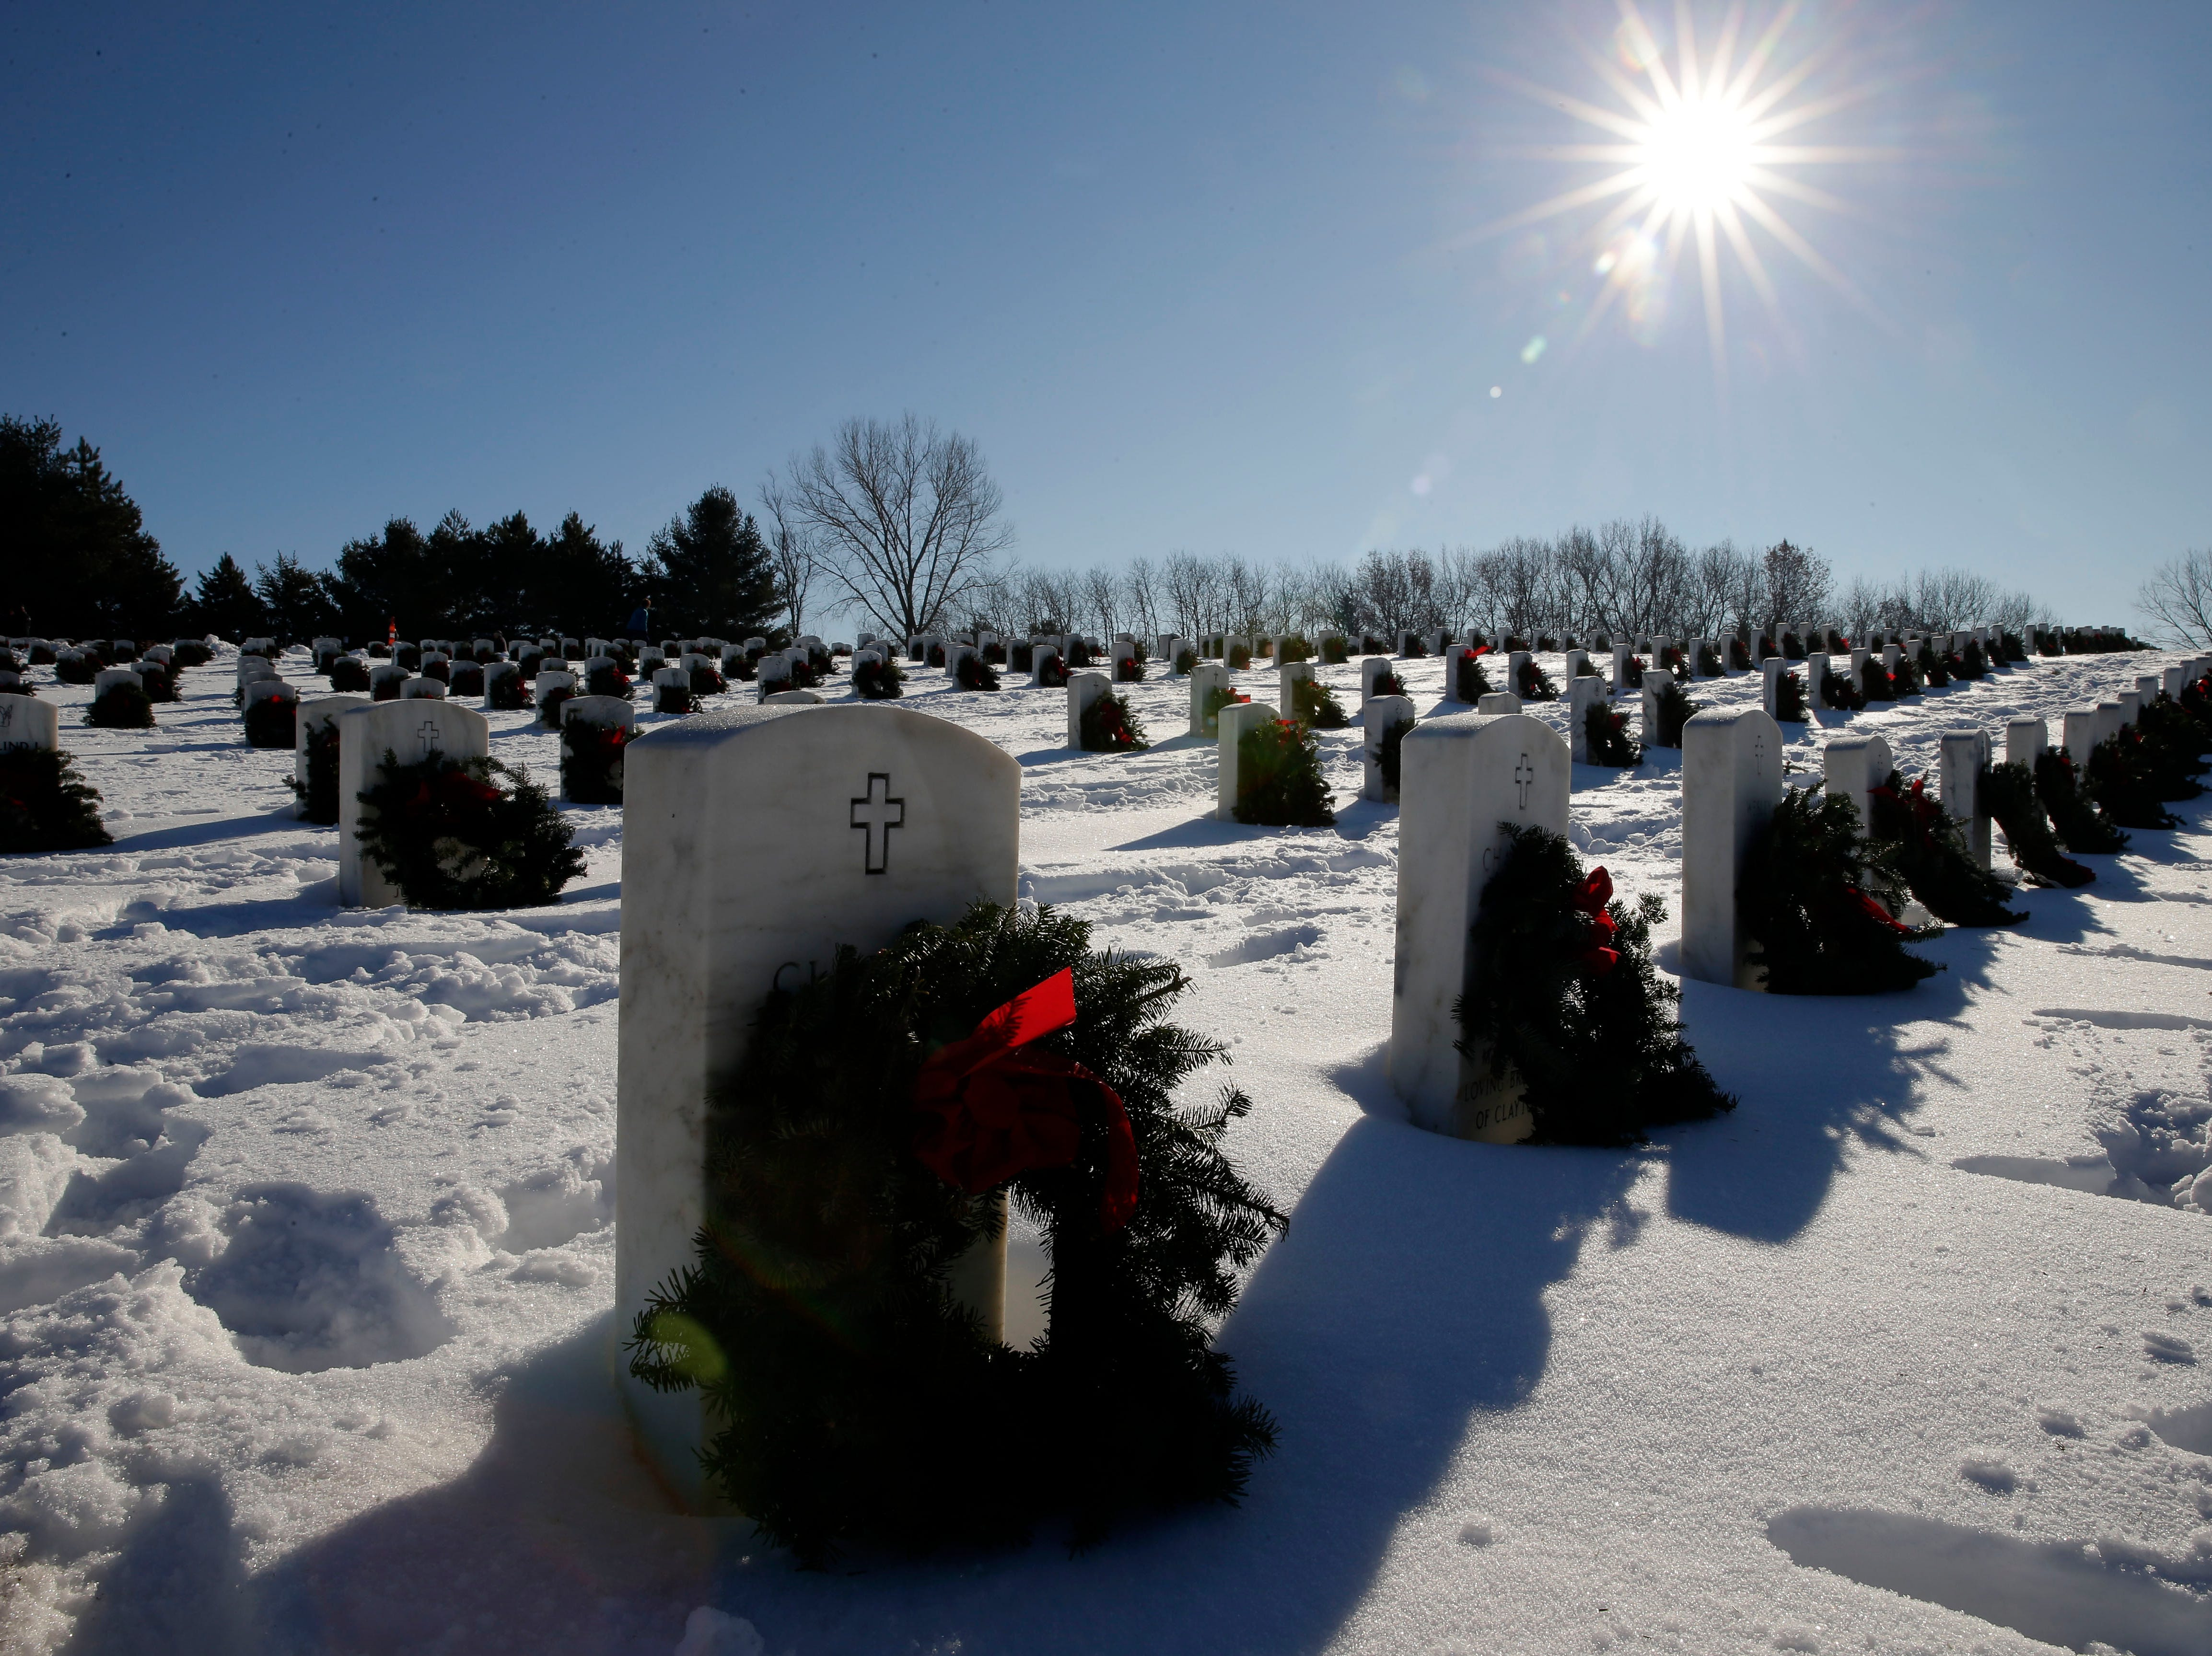 Wreaths are placed at graves during Wreaths Across America Day at the Central Wisconsin Veterans Memorial Cemetery Saturday, Dec. 15, 2018, in King, Wis. More than 7,000 graves at King were honored with wreaths. Over 1,400 other locations took part in the coordinated ceremony.